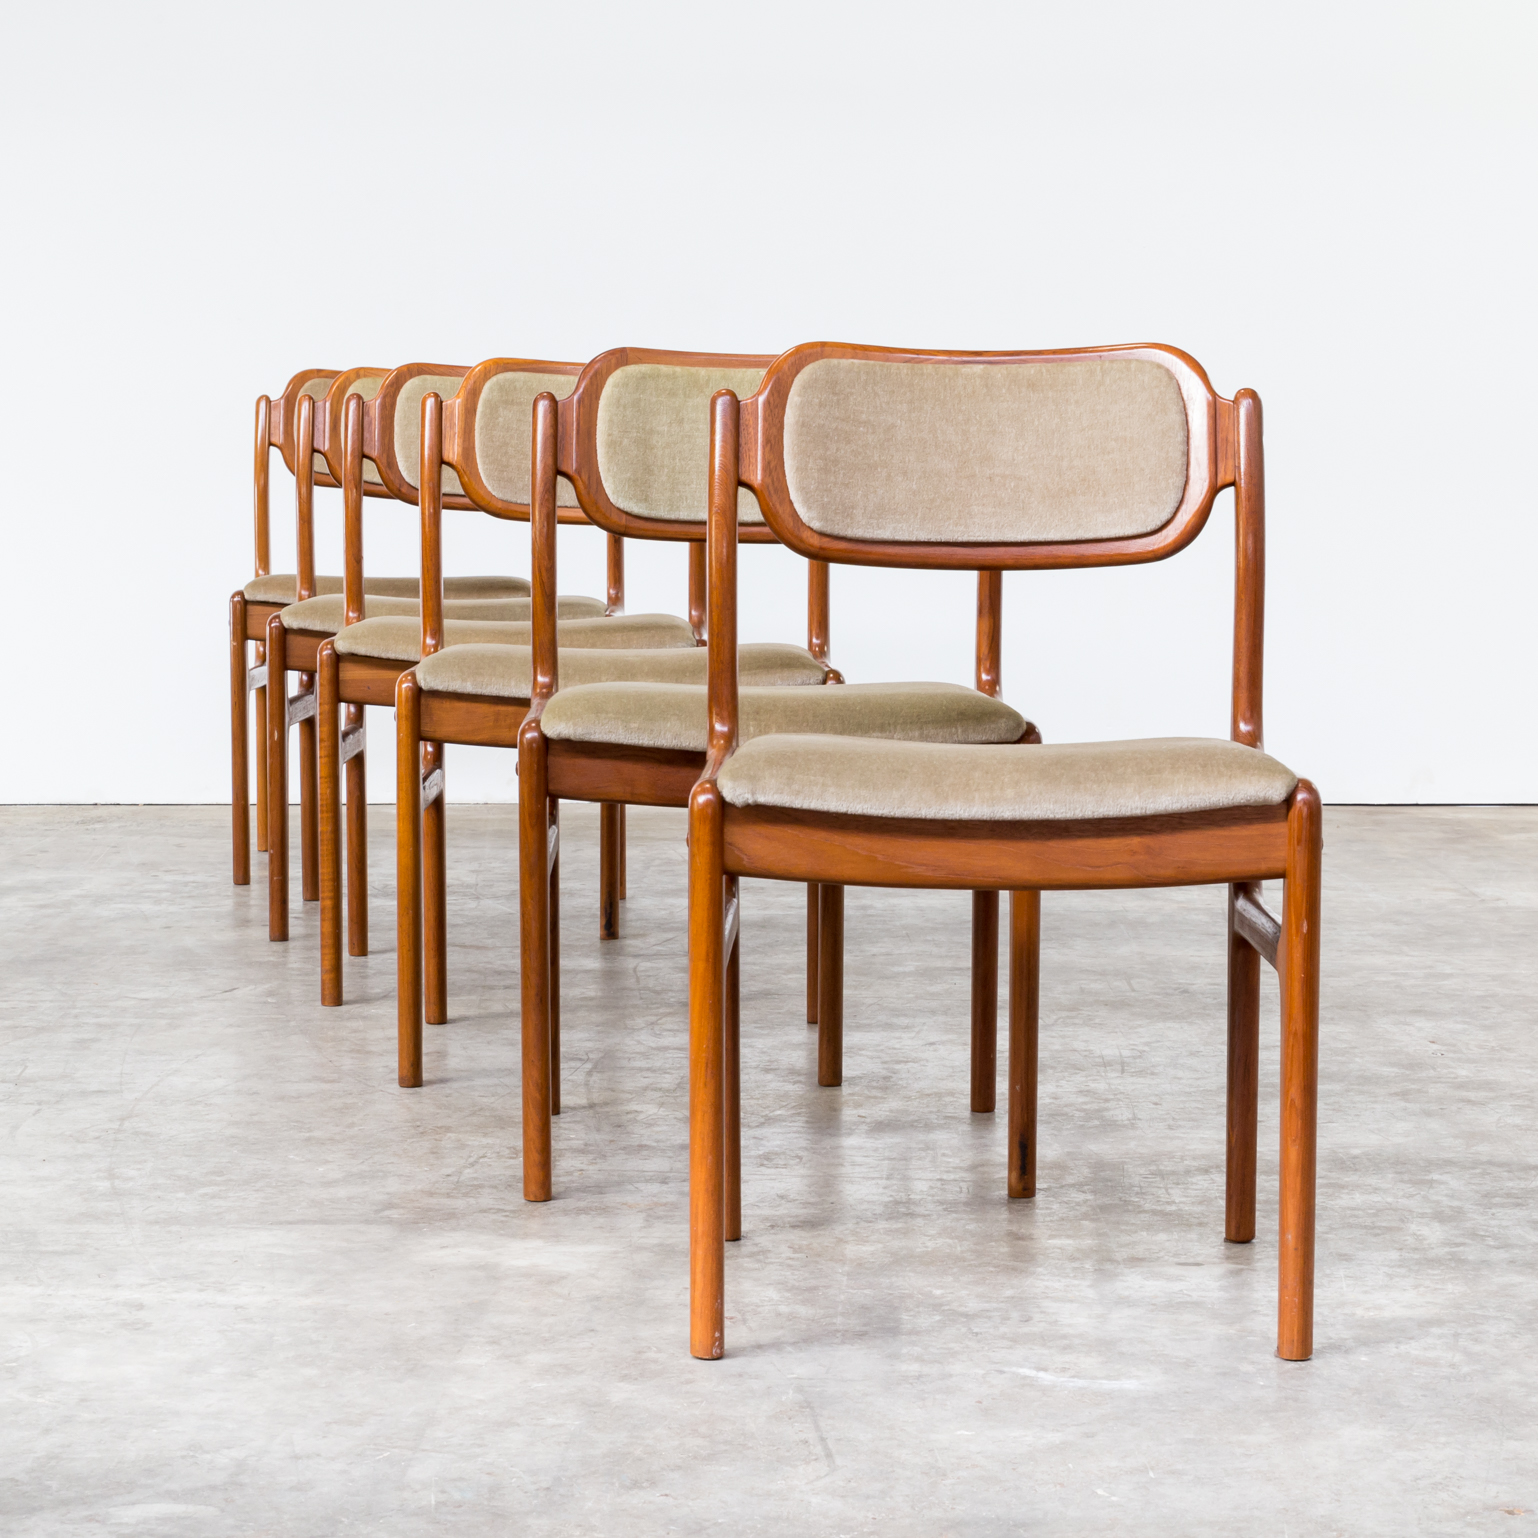 60s johannes andersen dining chairs for uldum mo belfabrik for 60s chair design